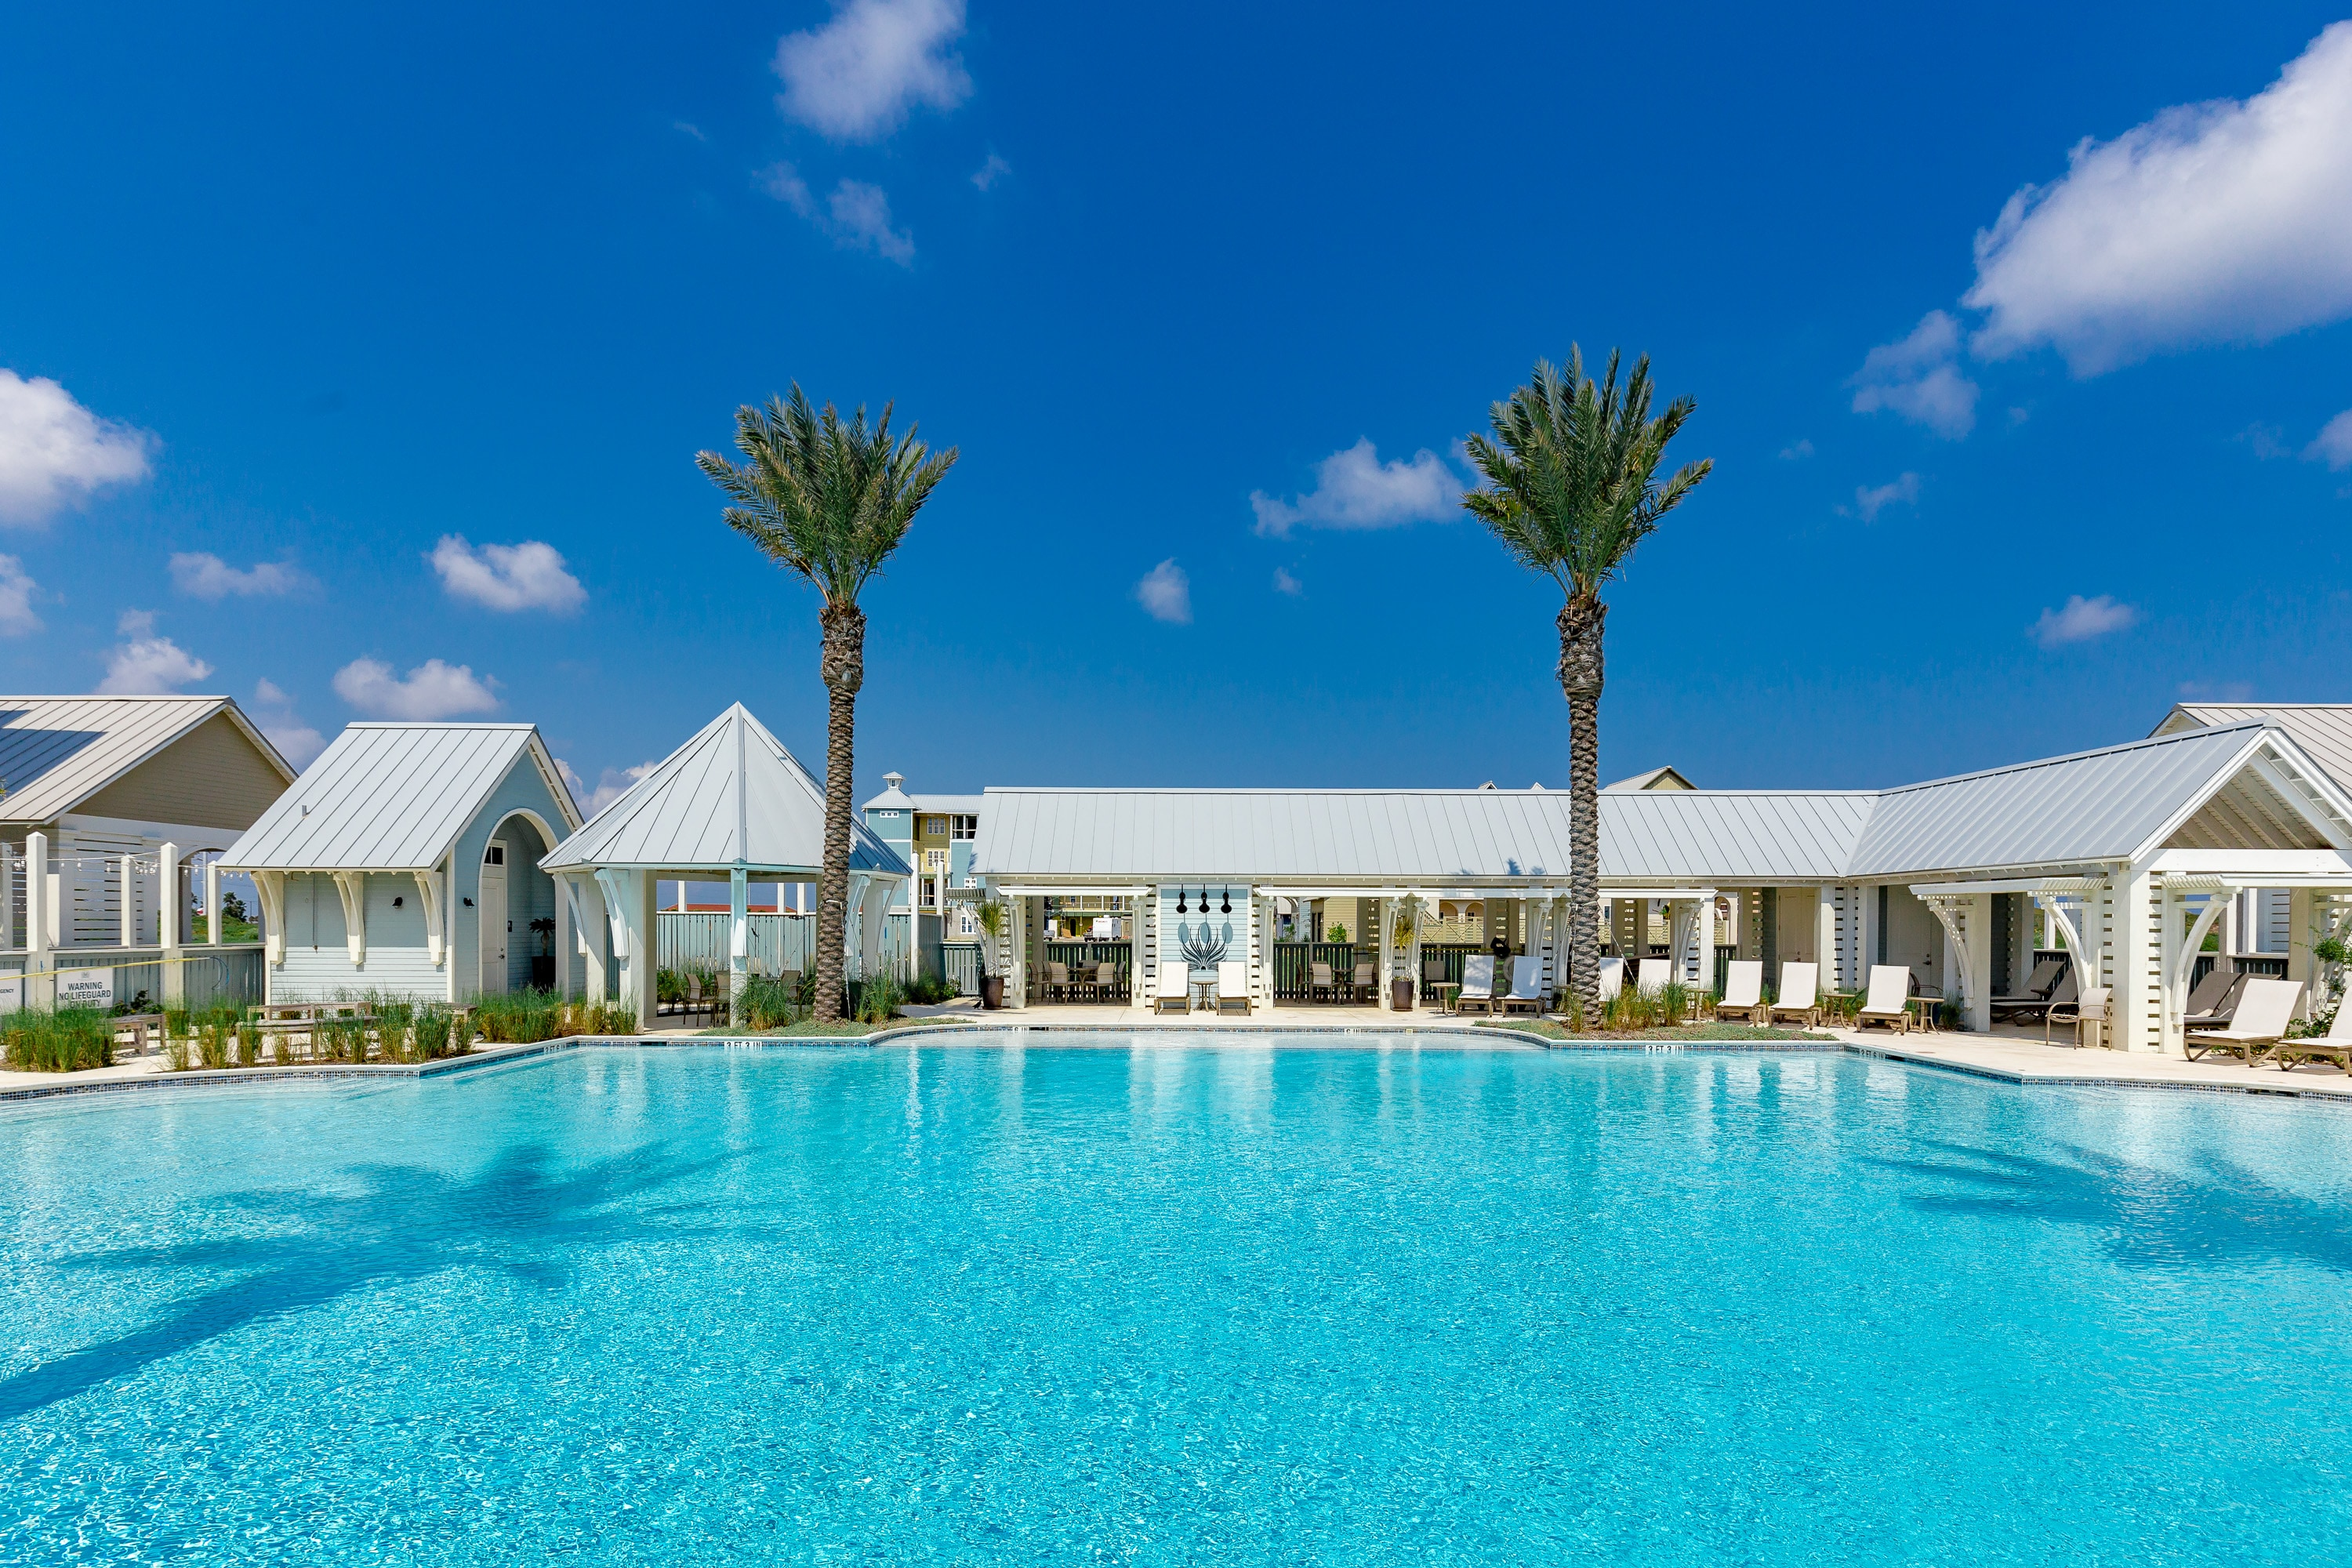 Luxuriate in the resort-style pool surrounded by cabanas.